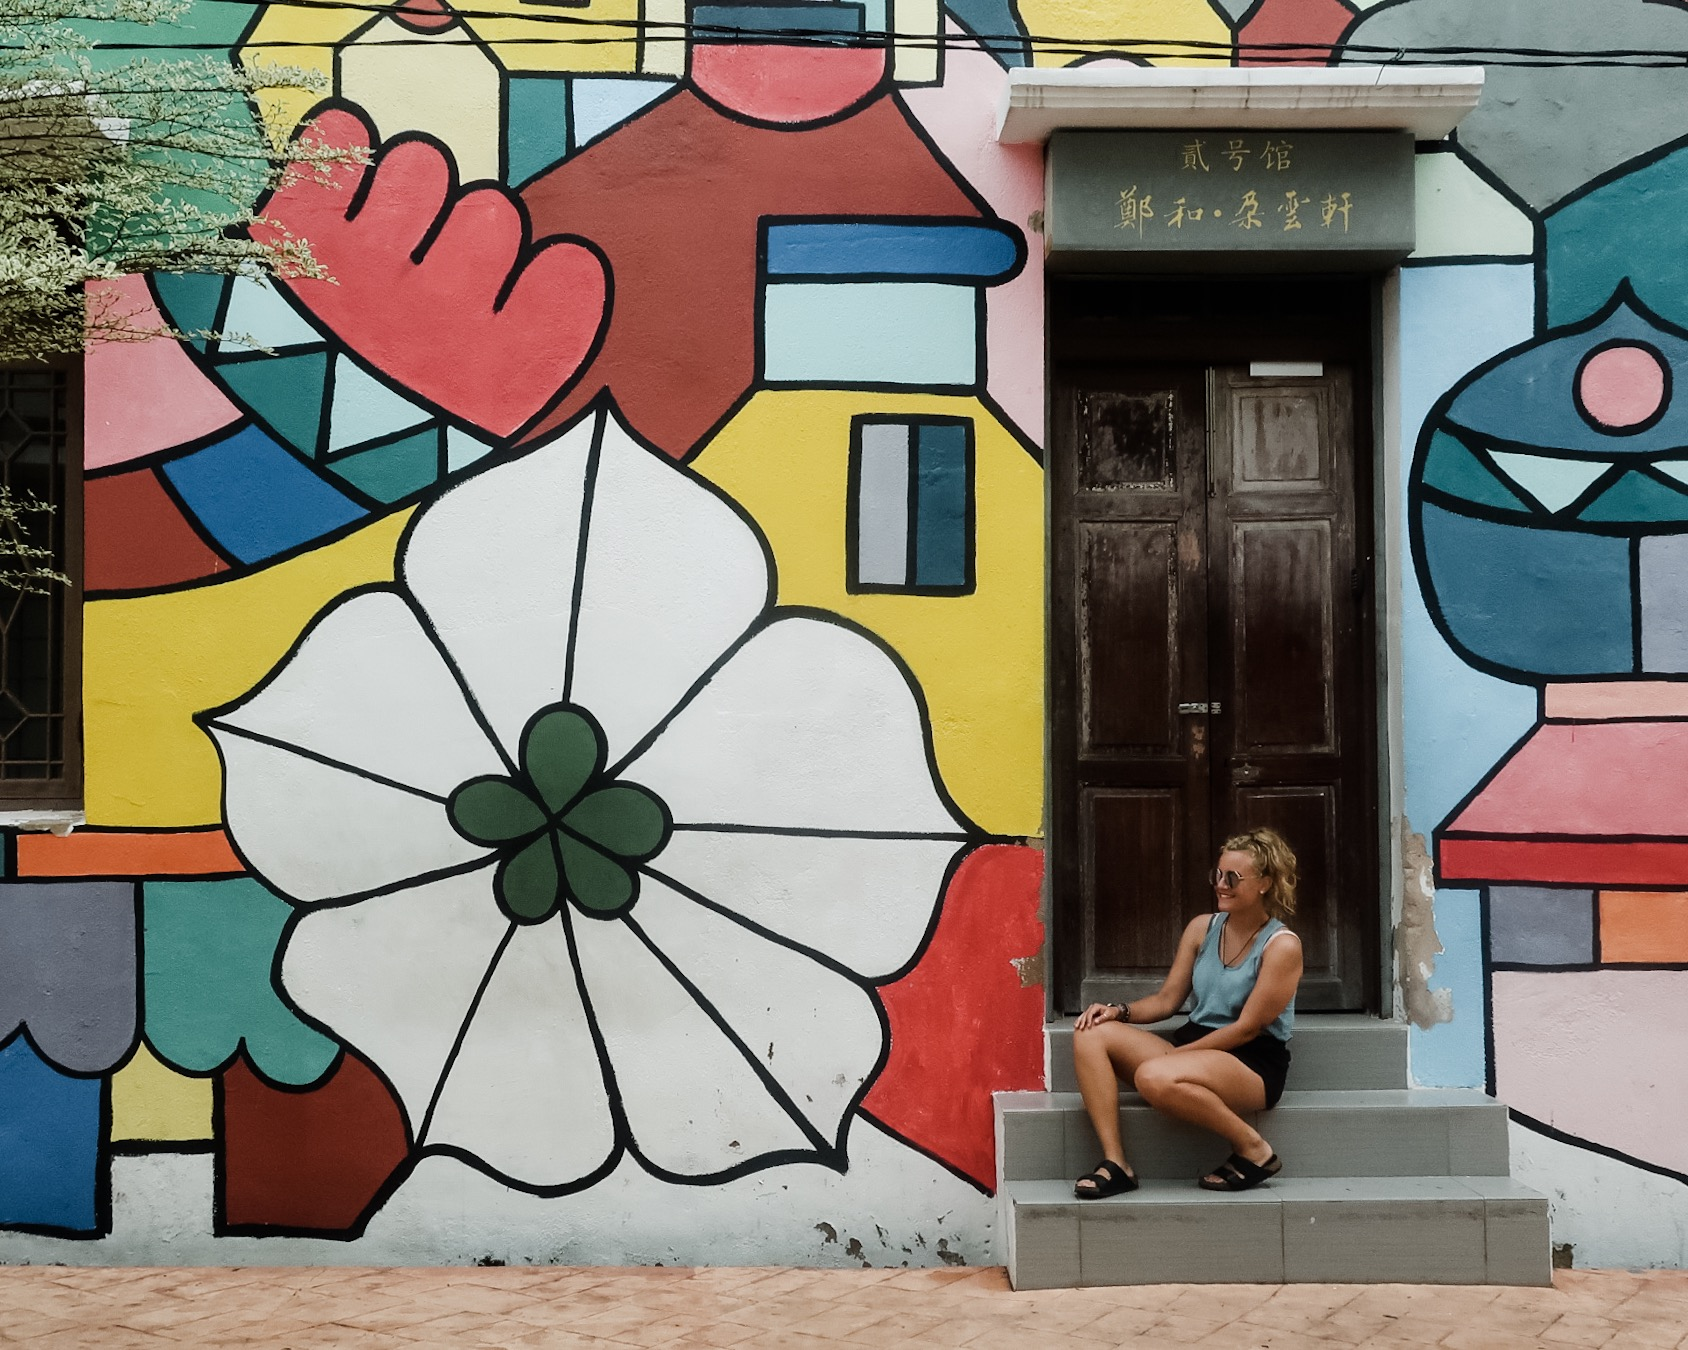 Things to do Melaka: Sat with some colourful street art in Melaka